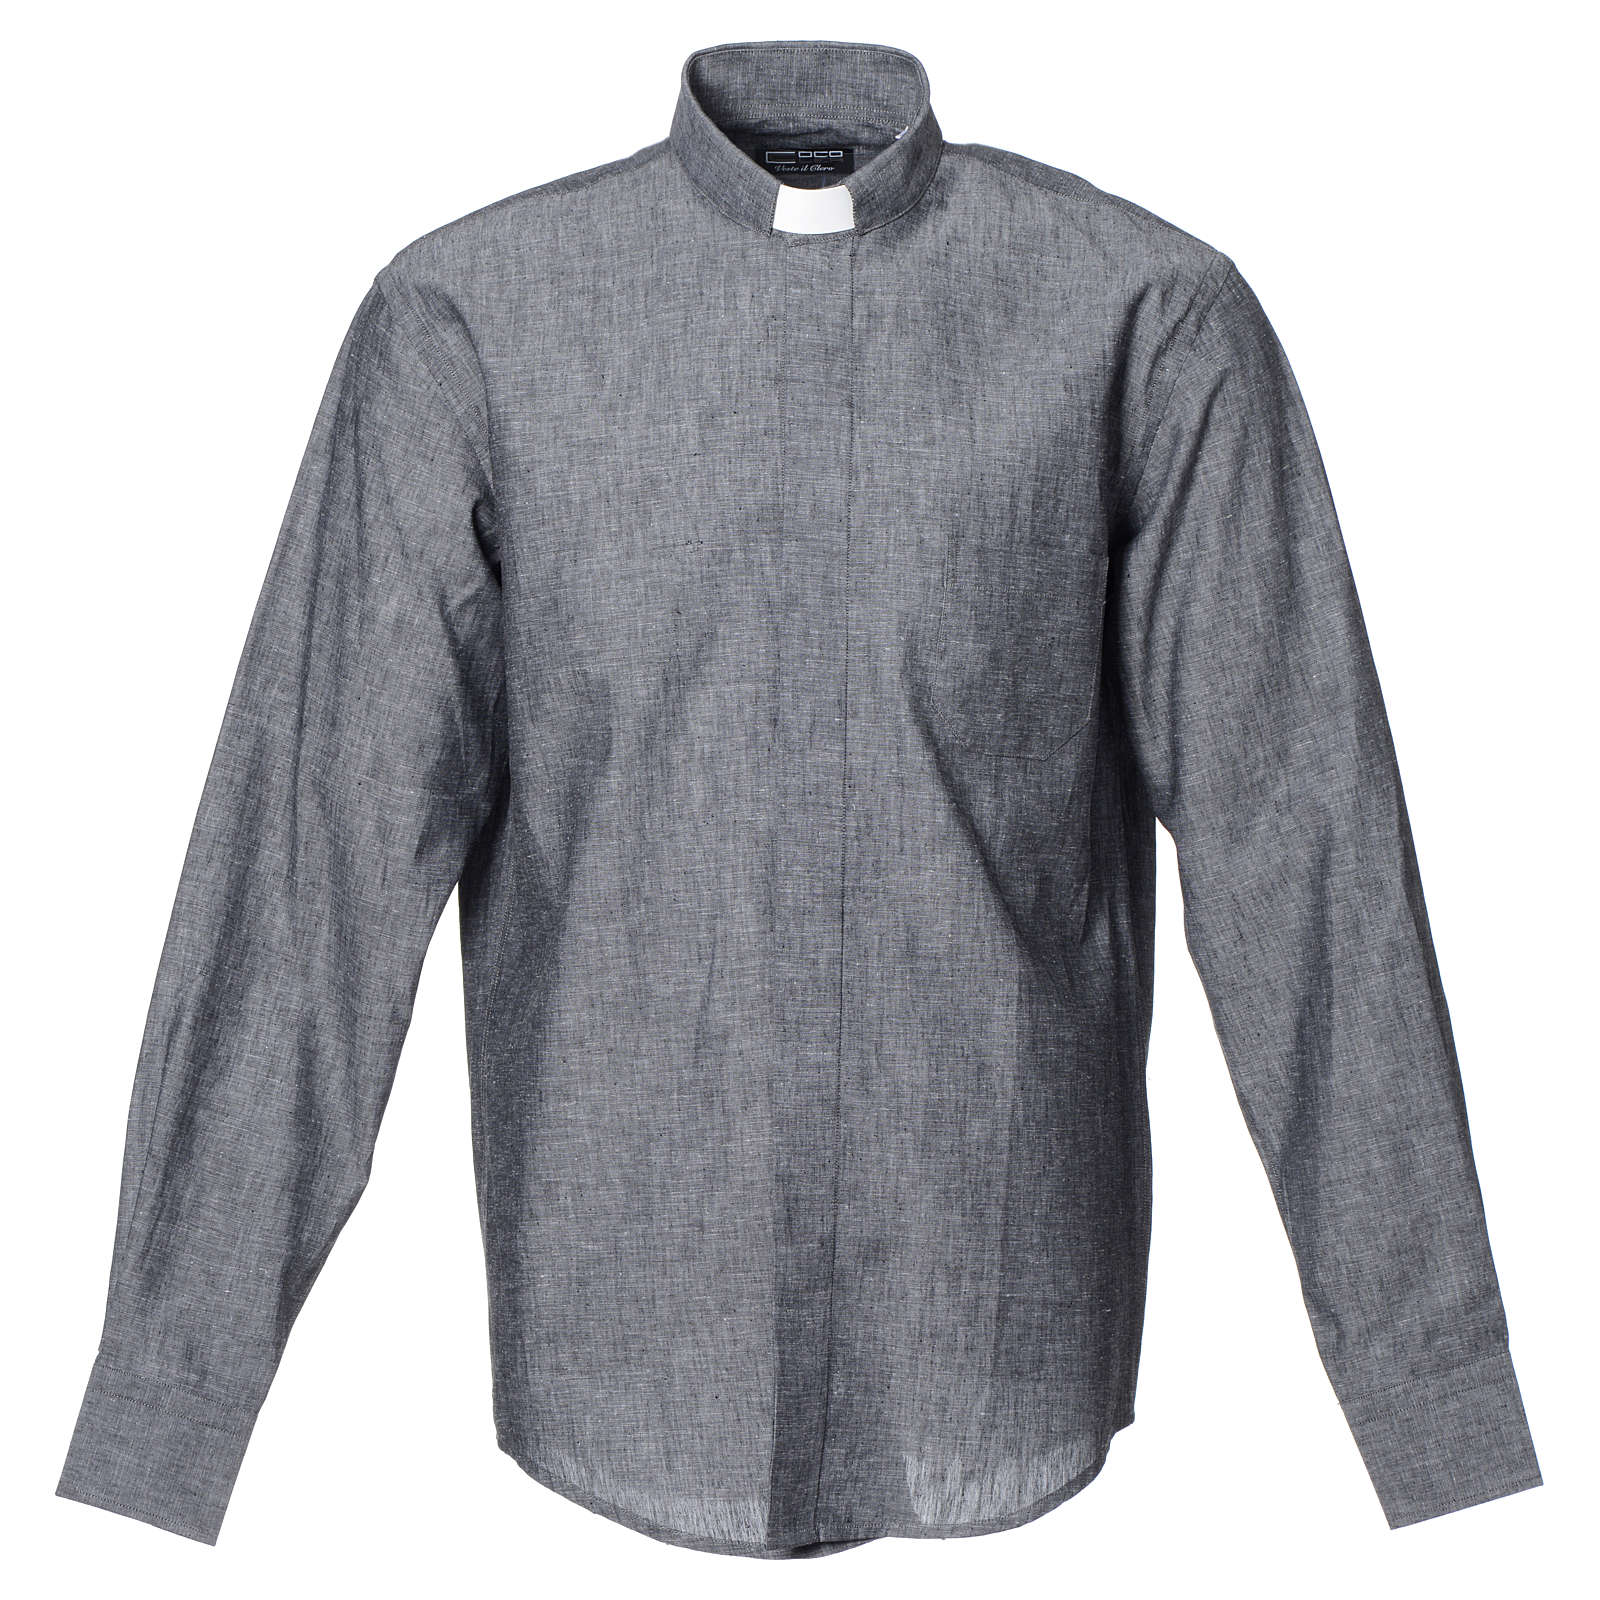 Long Sleeve Clergy shirt in grey linen and cotton 4